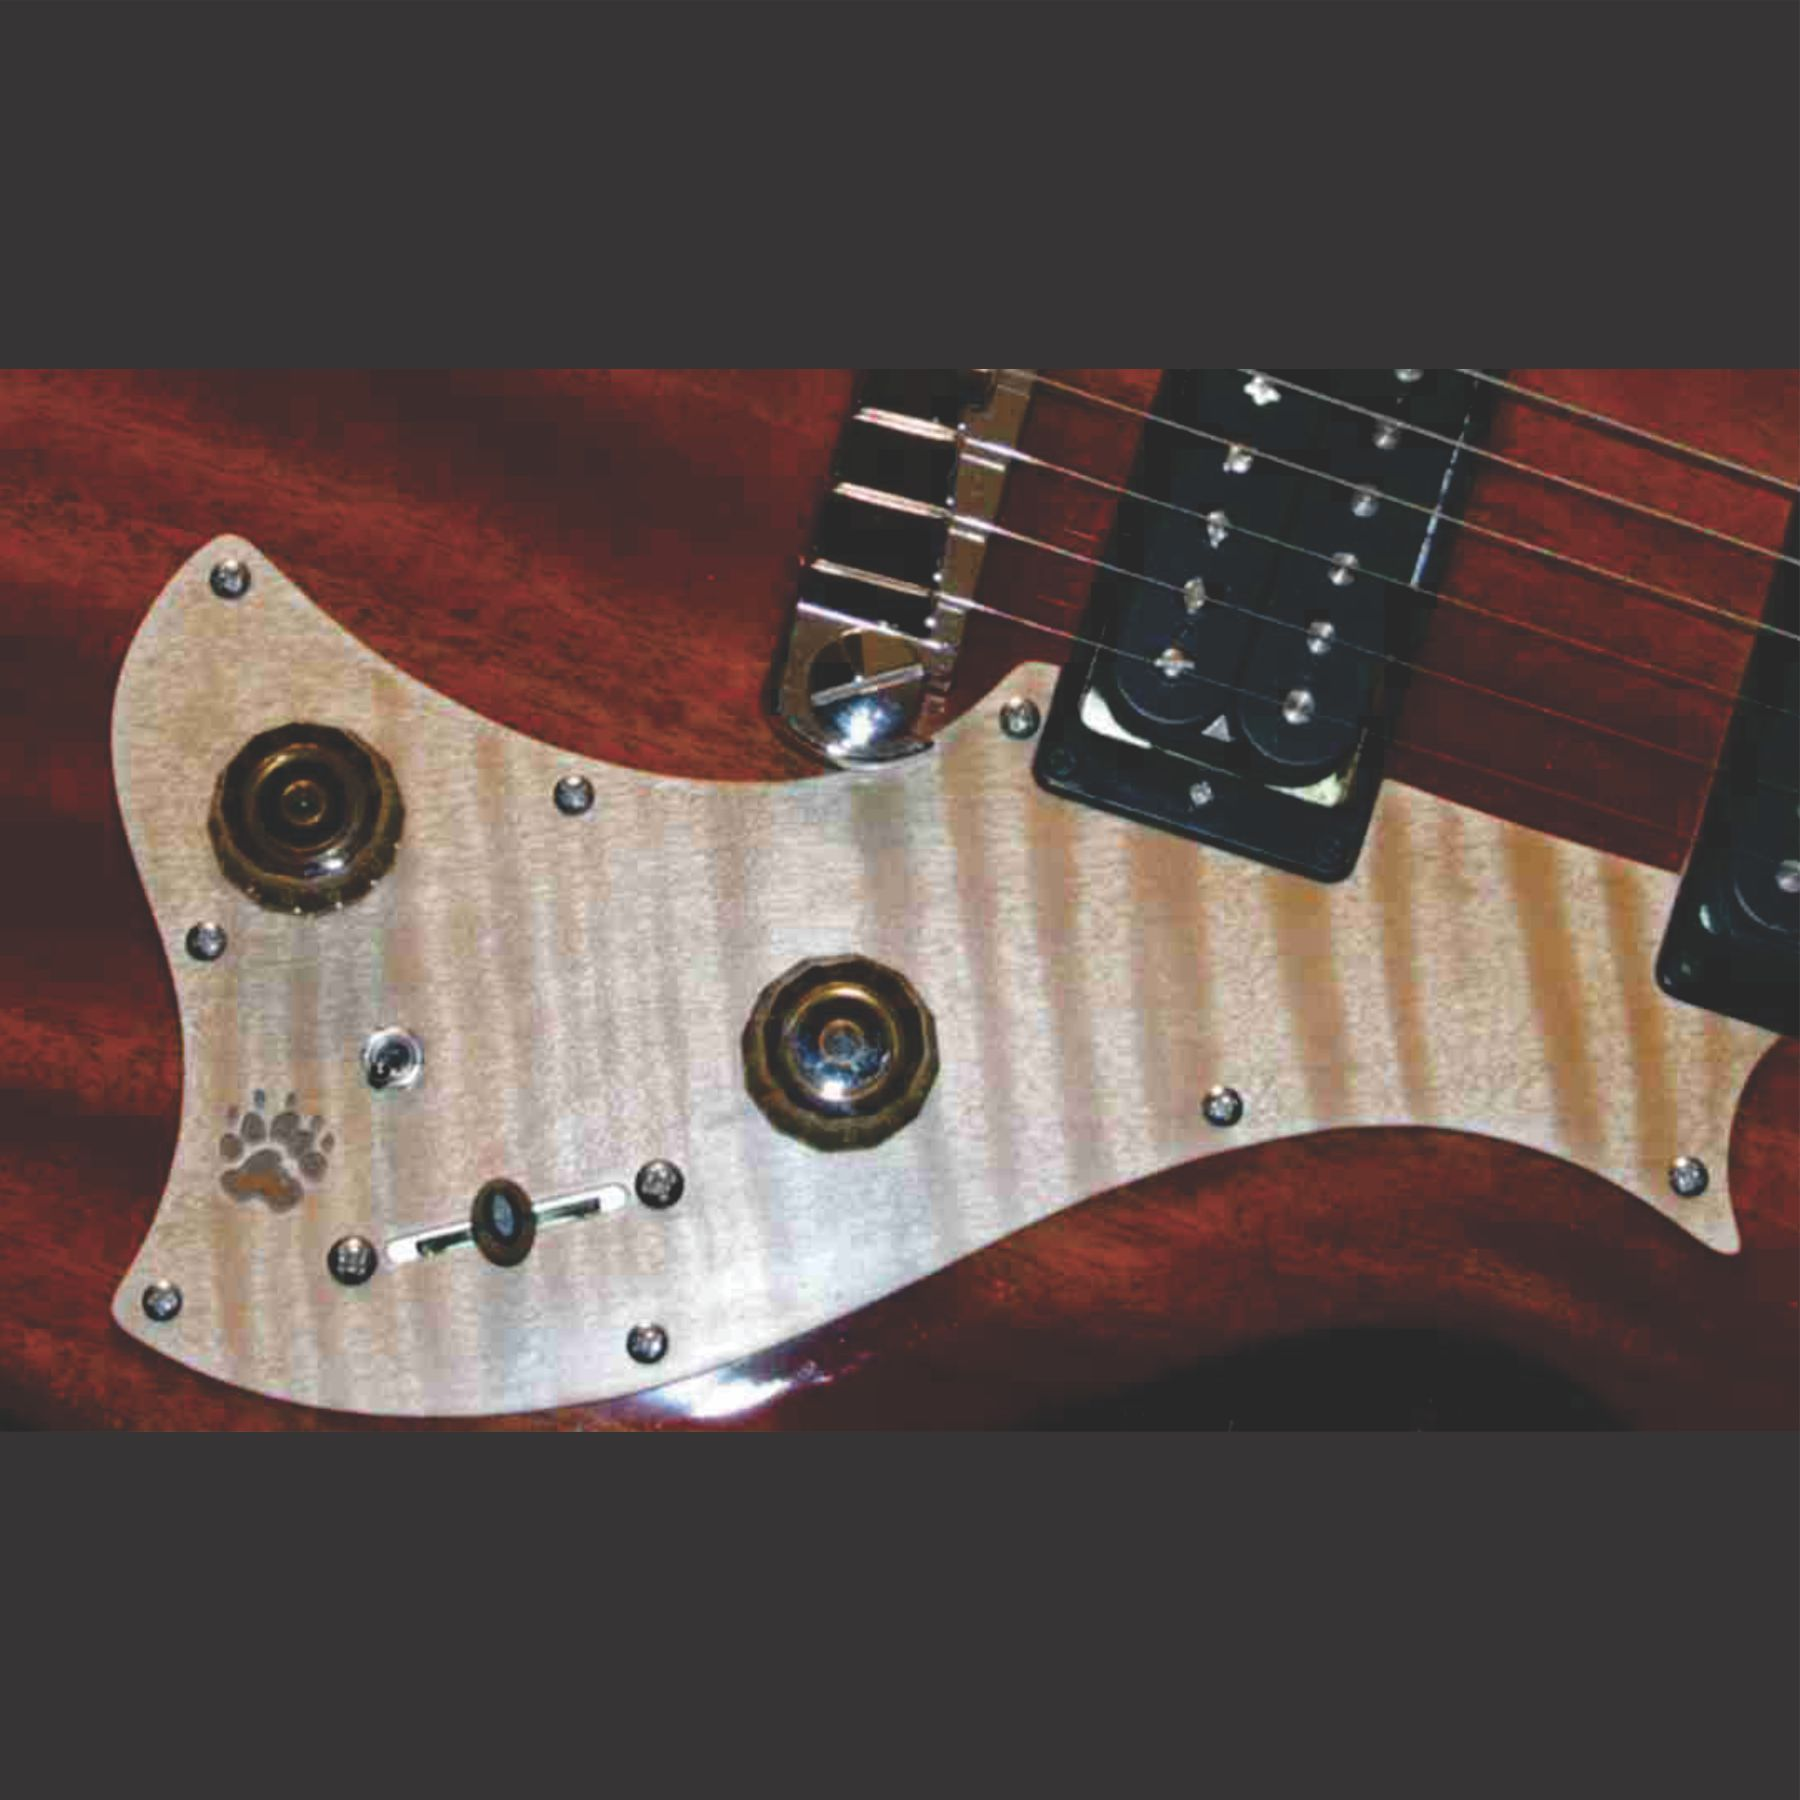 PRS Mira Custom Pickguard Done In Flame Maple With Bear Claw Graphic